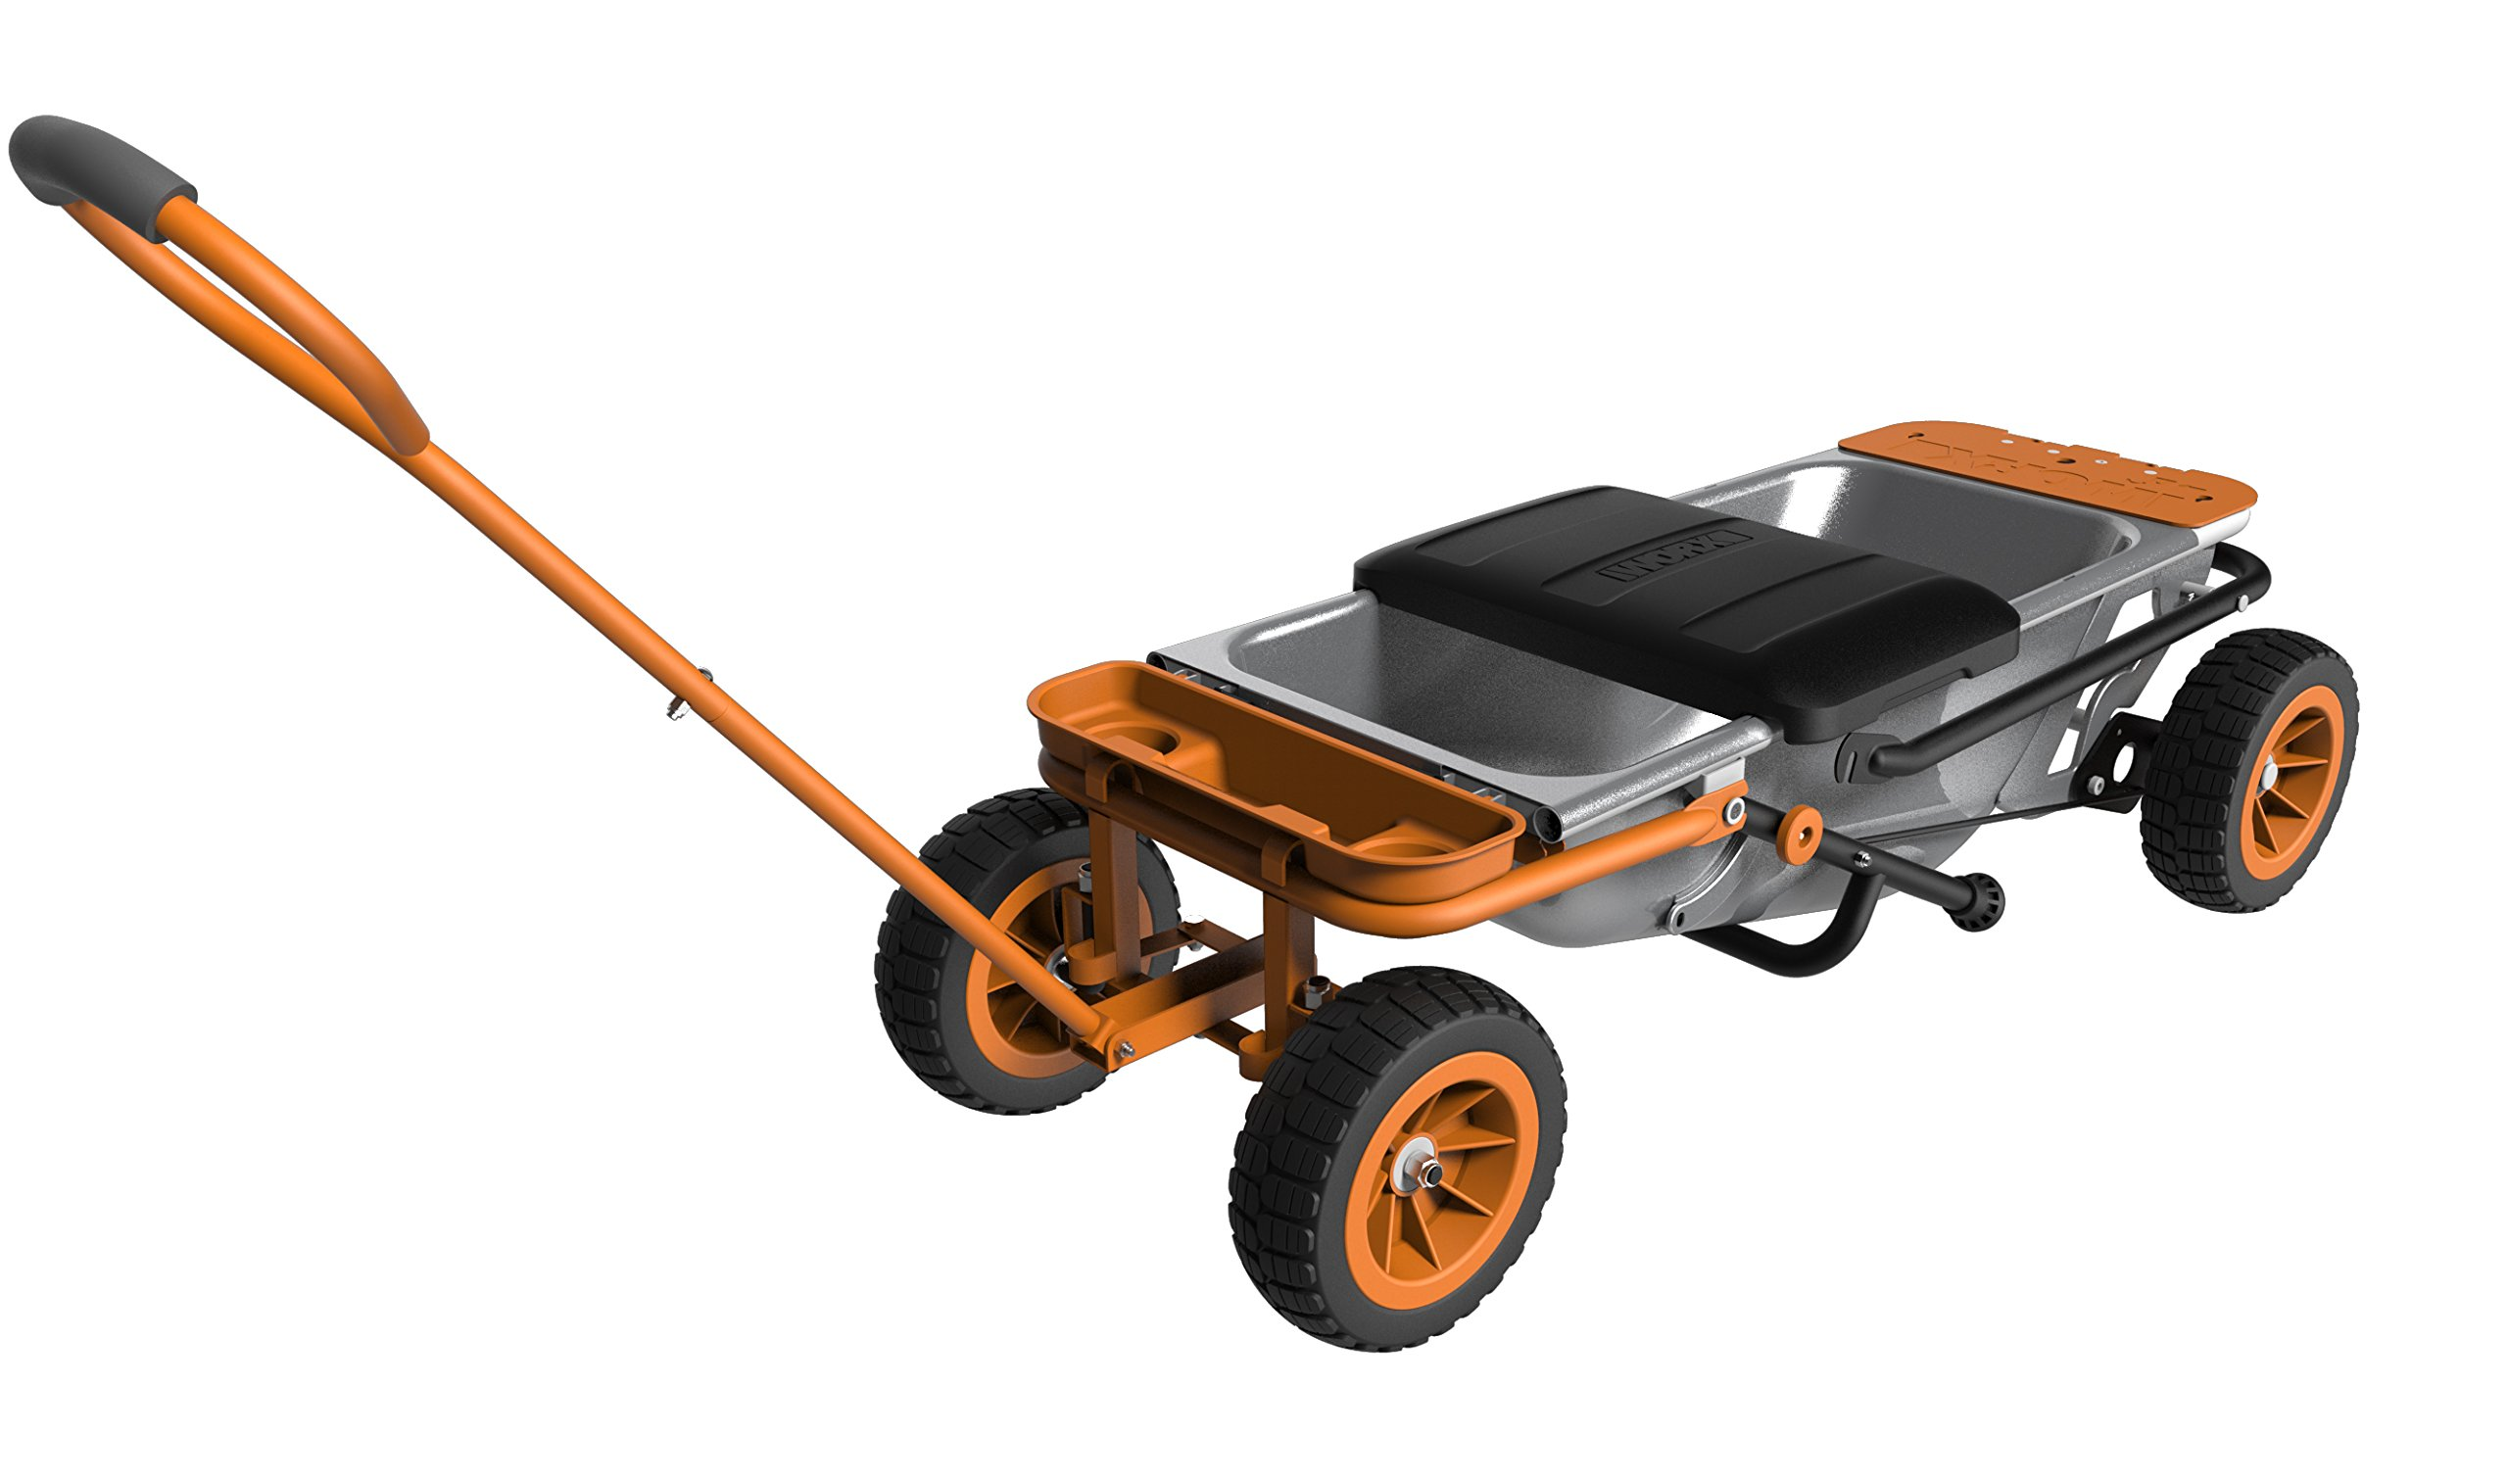 WORX Aerocart Multifunction Wheelbarrow, Dolly and Cart with WA0228 Wagon Kit by Worx